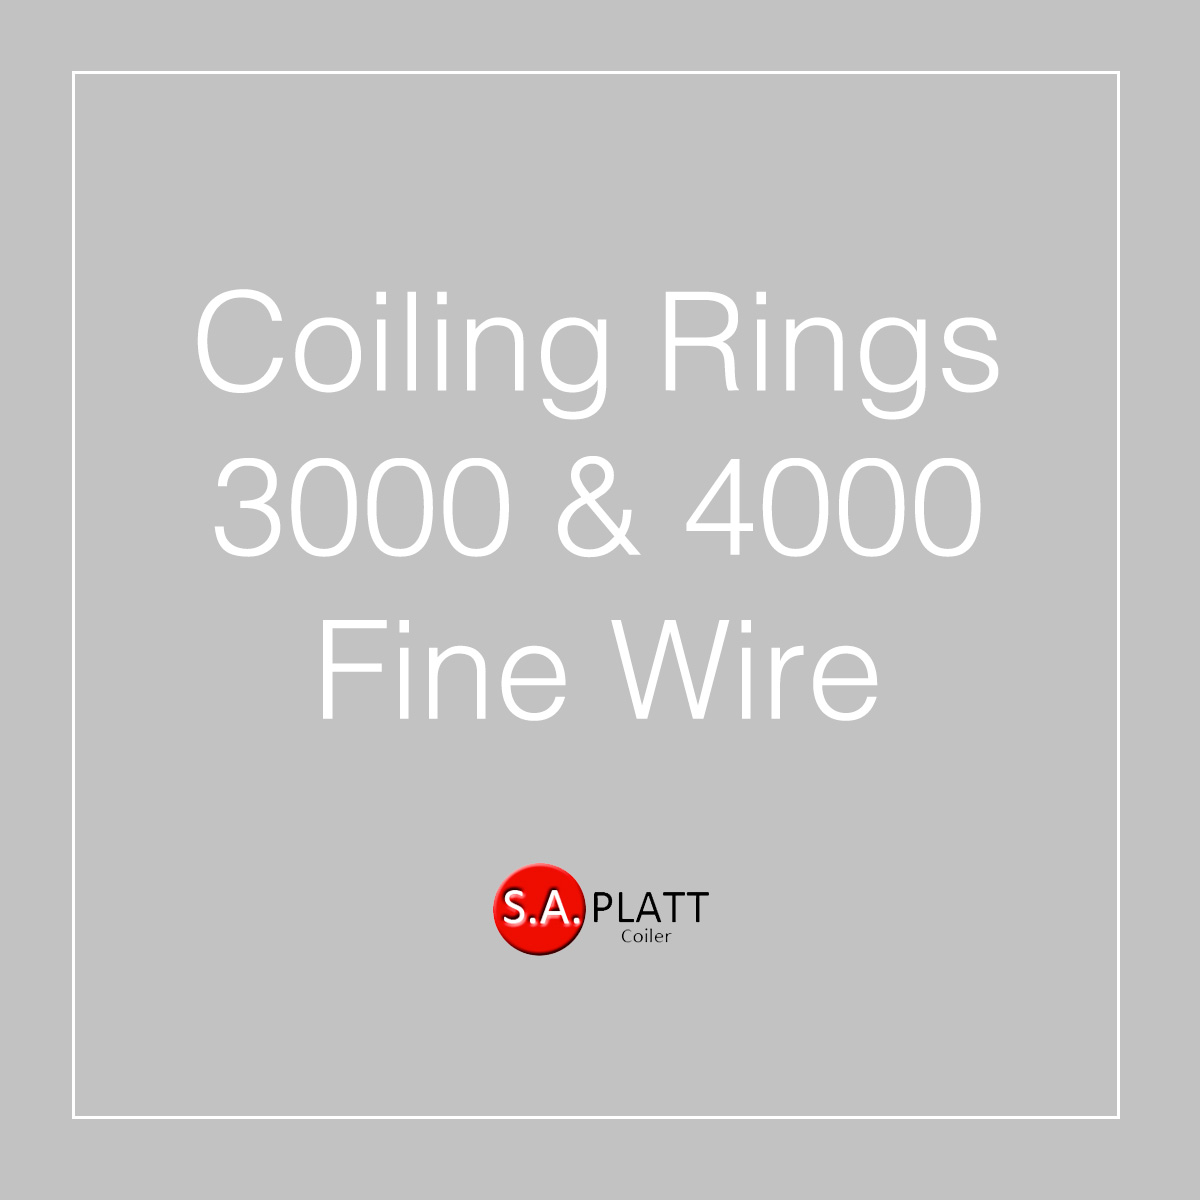 COILING RINGS:3000 & 4000:FINE WIRE